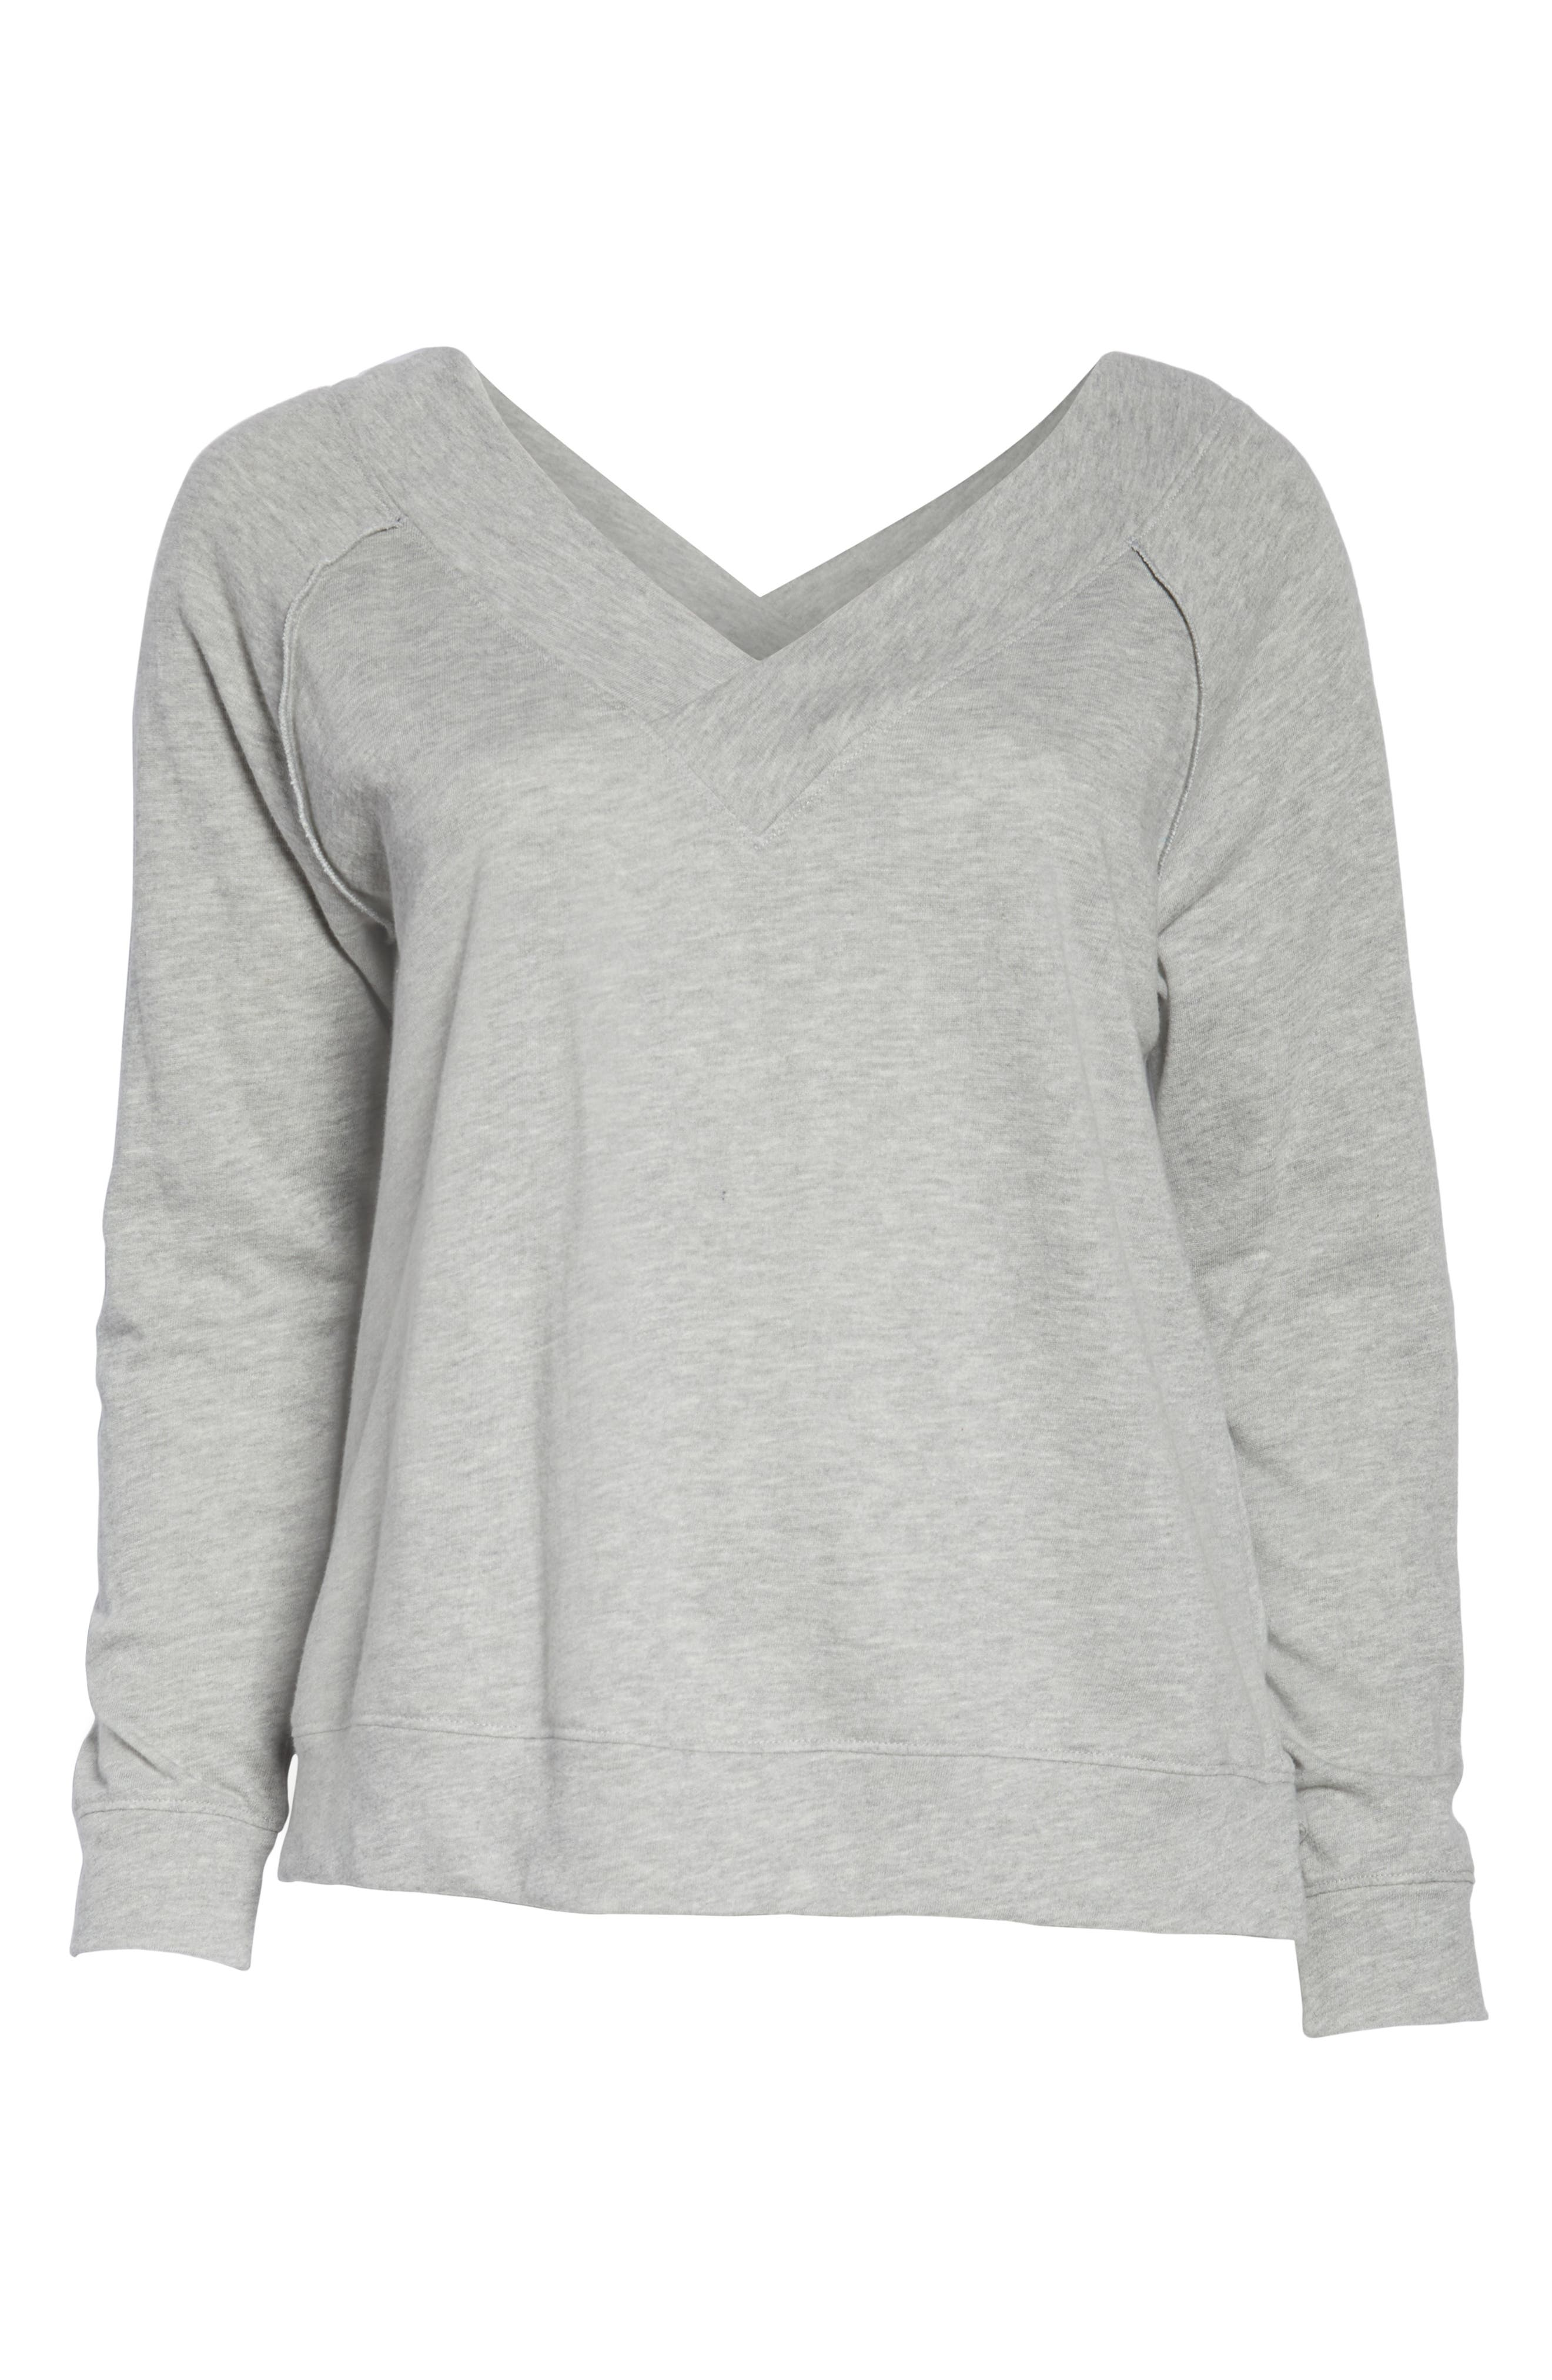 Double V-neck Sweatshirt,                             Alternate thumbnail 12, color,                             GREY PEARL HEATHER